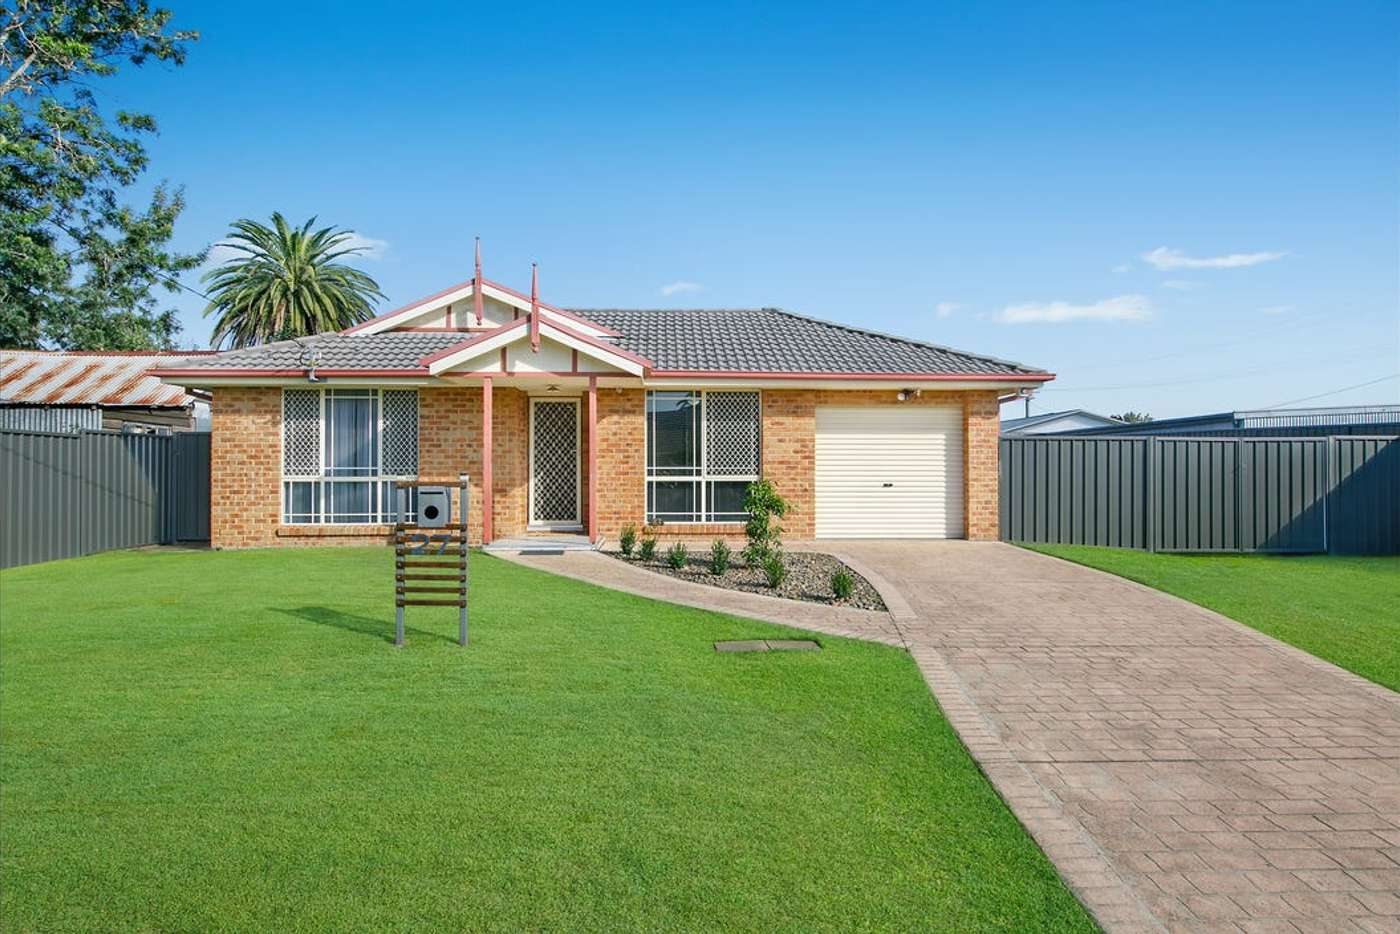 Main view of Homely house listing, 27 Carroll Avenue, Cessnock NSW 2325